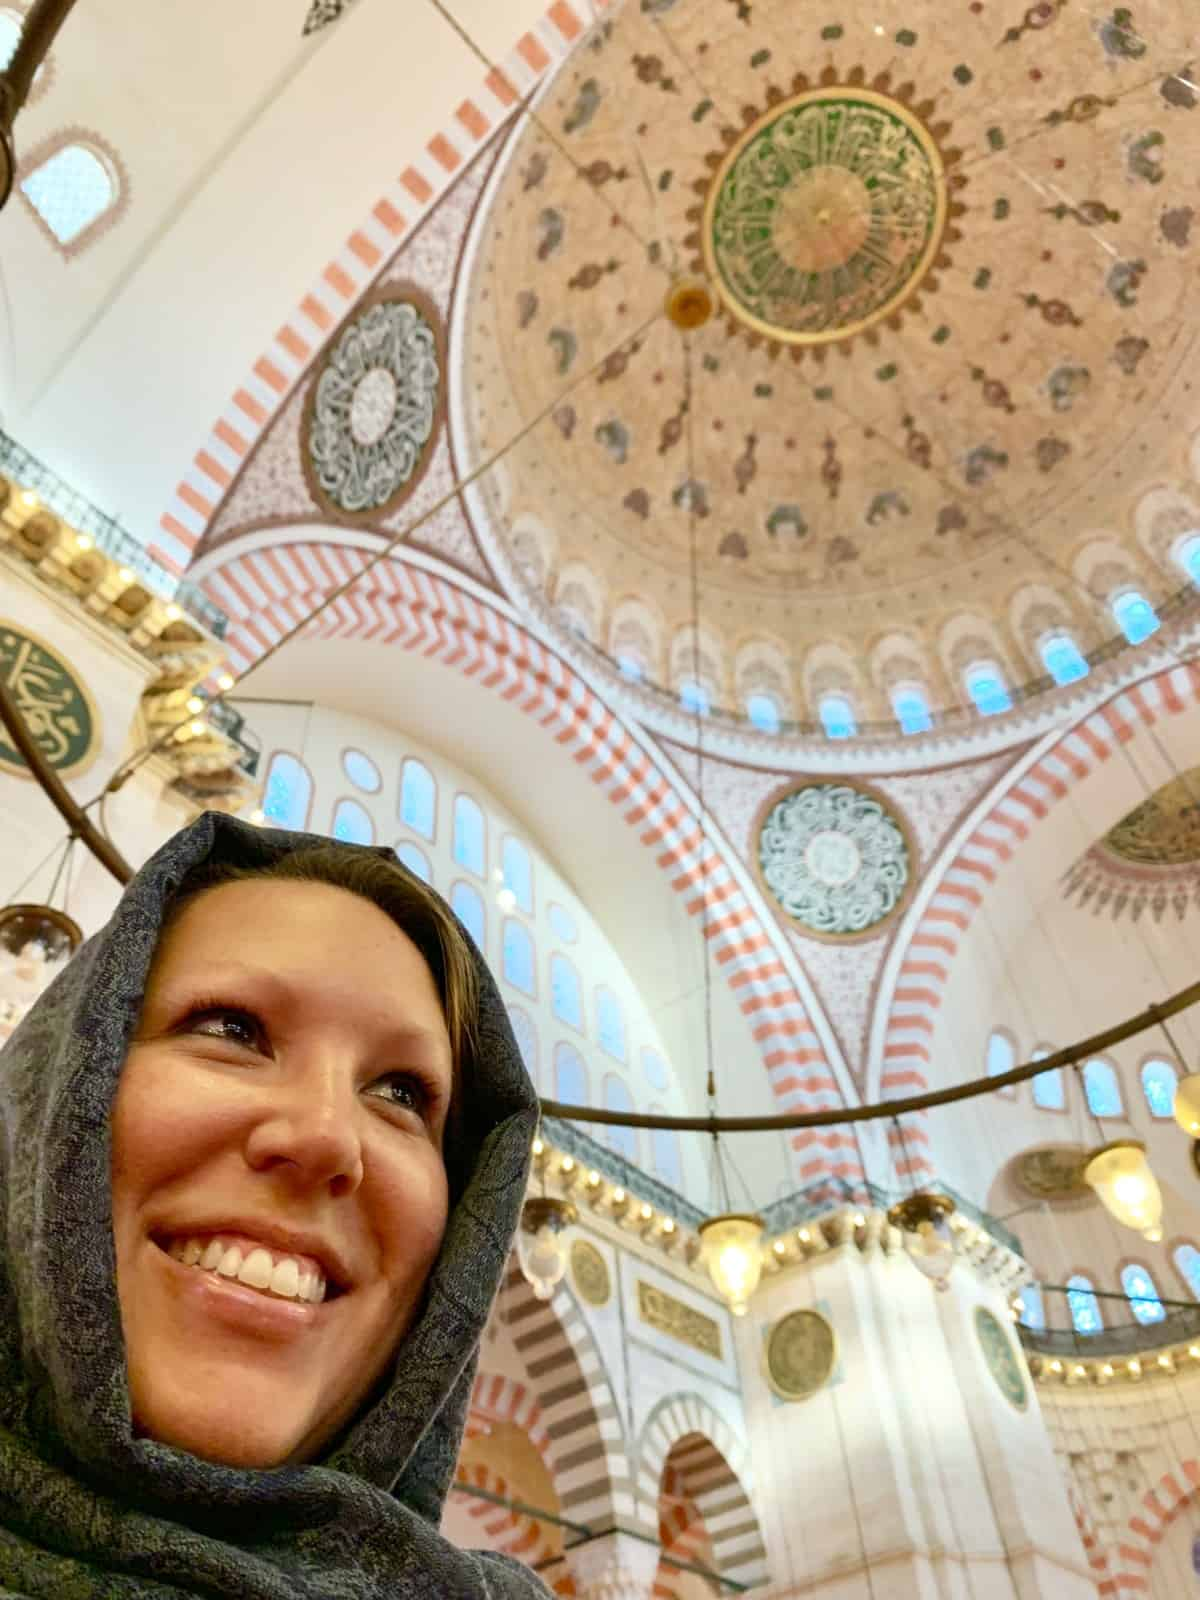 Turkey trip planning tips - how to plan for visiting mosques